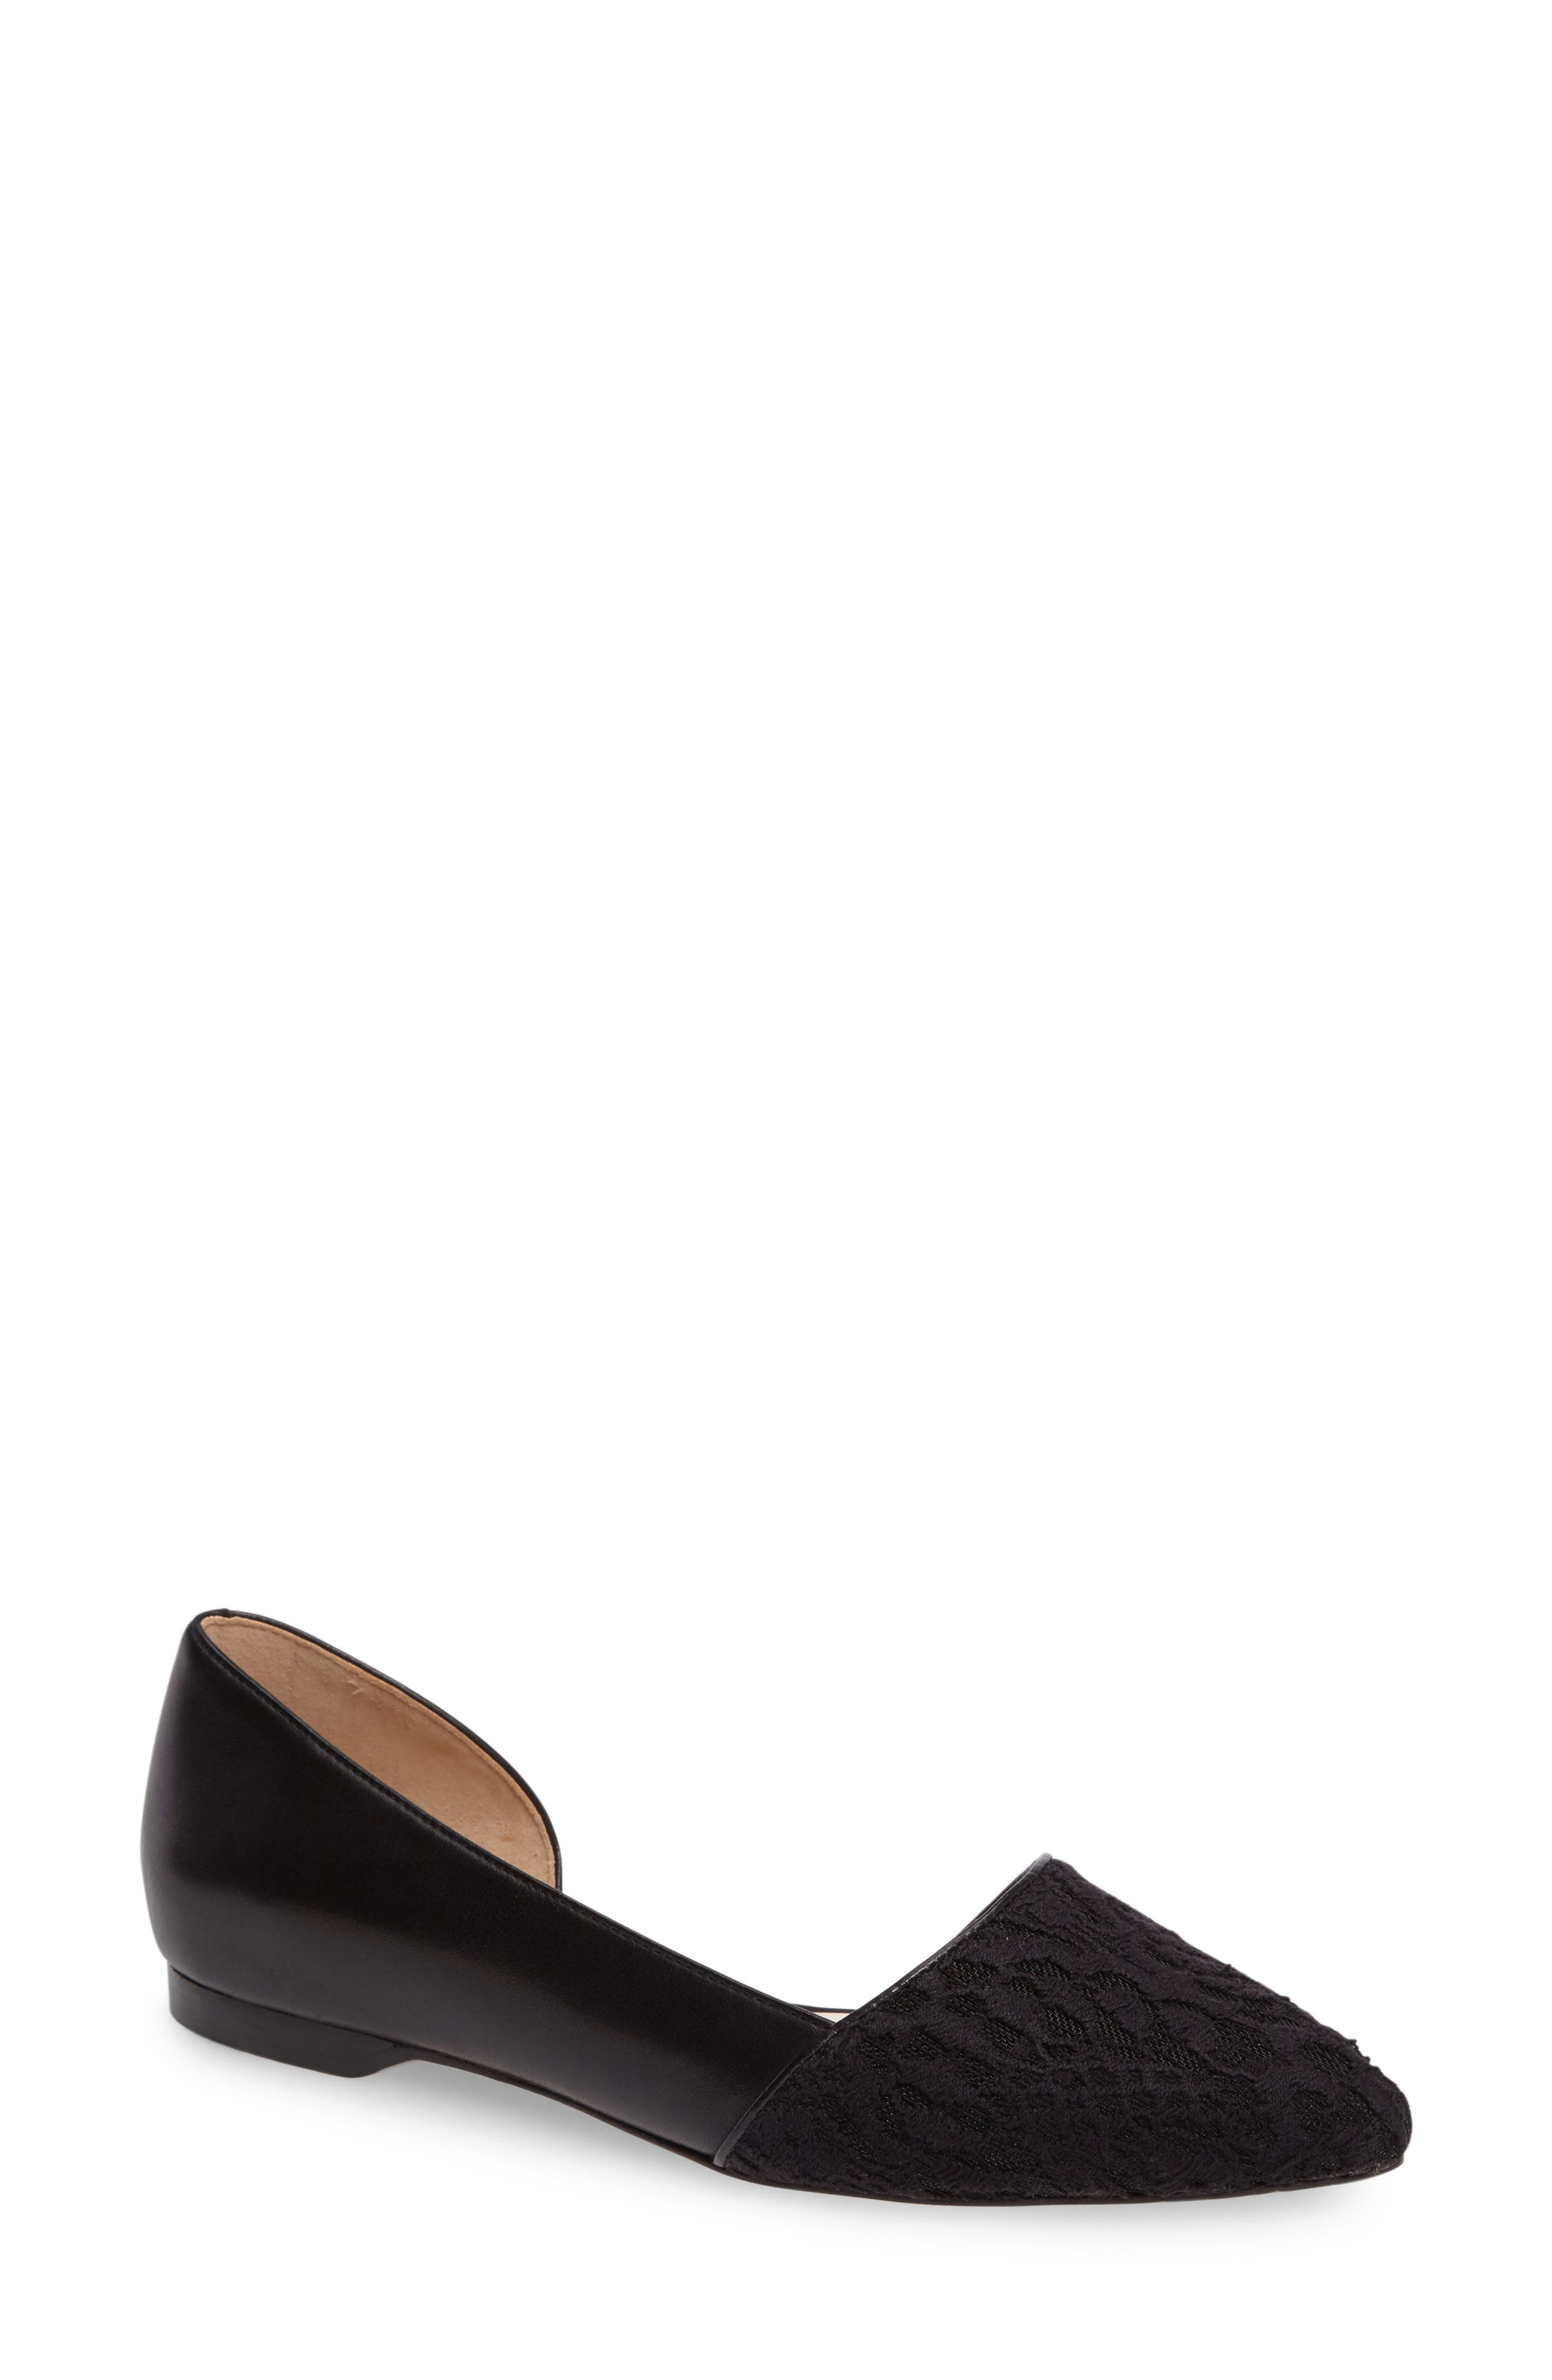 Alternate Image 1 Selected - Cole Haan 'Amalia' Half d'Orsay Skimmer Flat (Women)